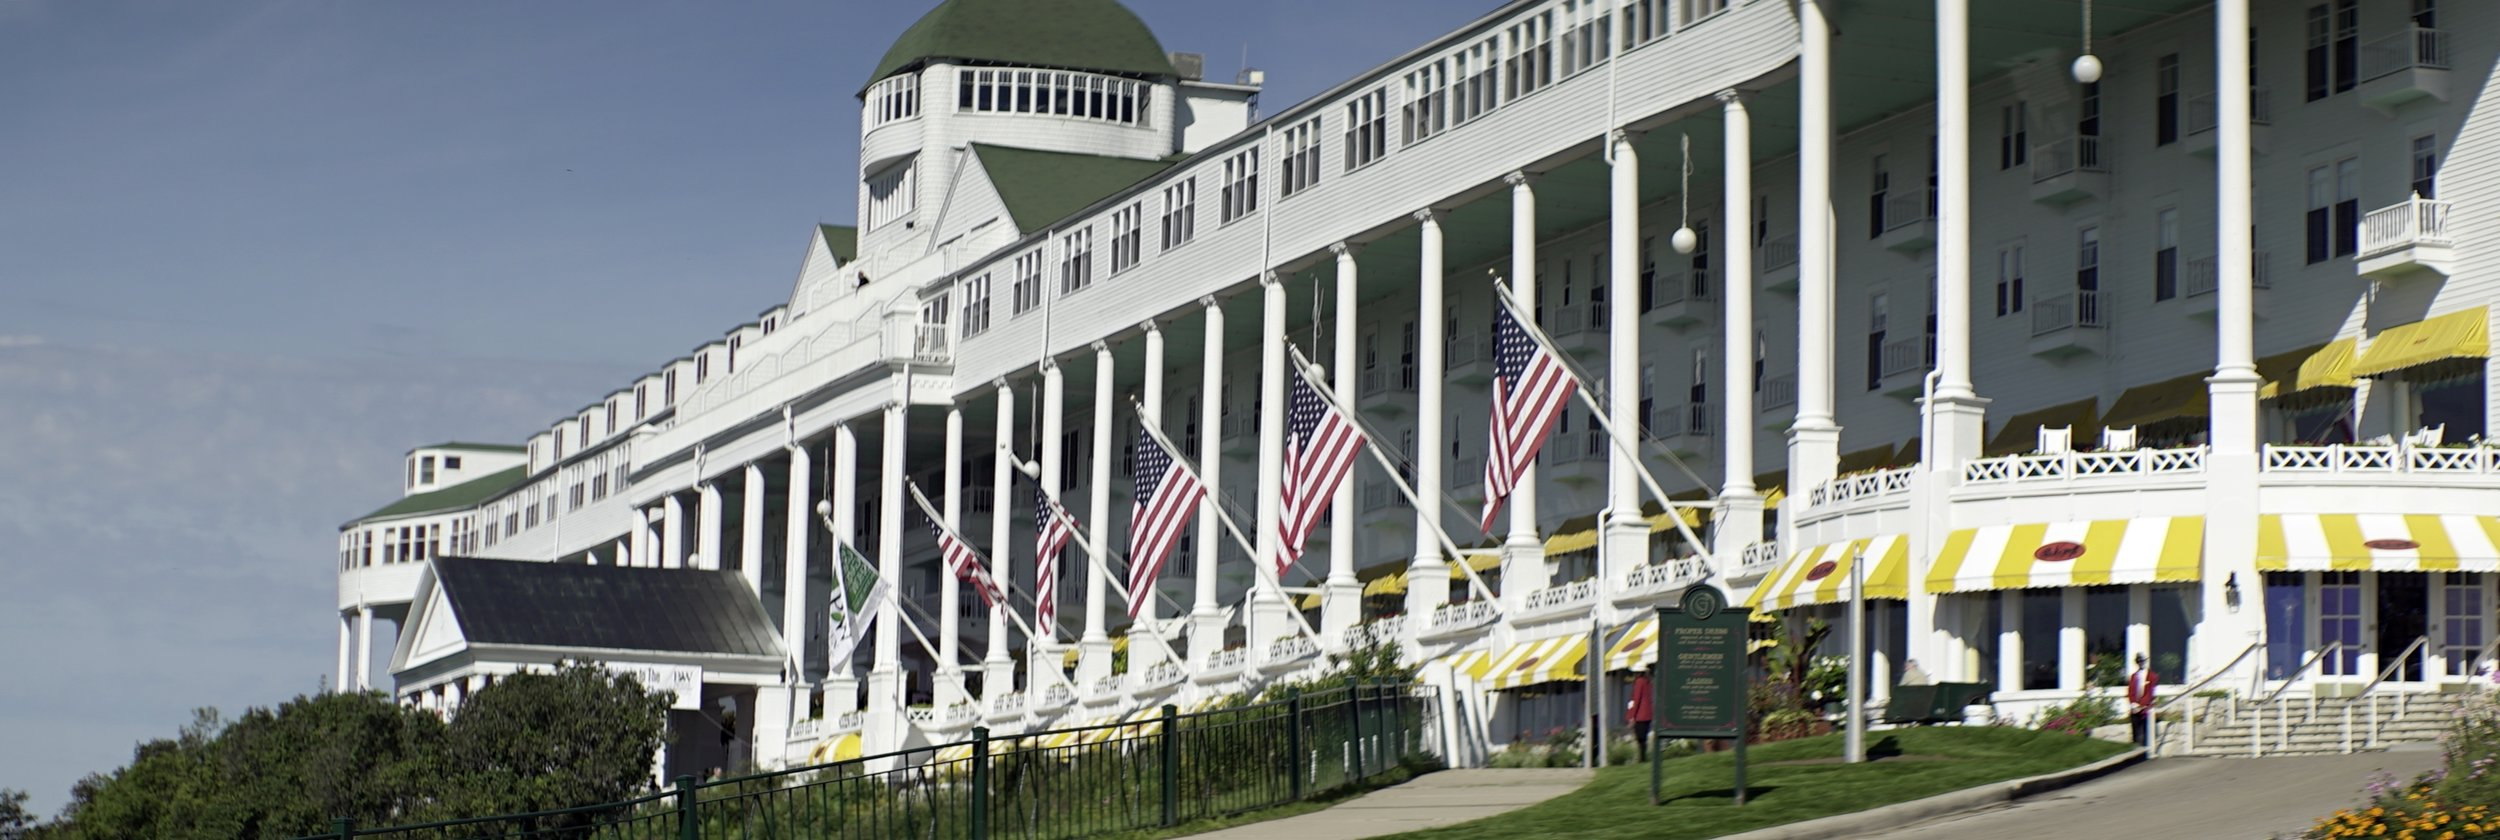 Lomo 100mm anamorphic lens | The Grand Hotel - Mackinac Island, MI. Founded in 1887, and voted one of the top 500 hotels in the world, the Grand Hotel served as one of the major shooting locations in the film Somewhere in Time. Click   HERE   for more information about the hotel. Photo by: Keith Nickoson